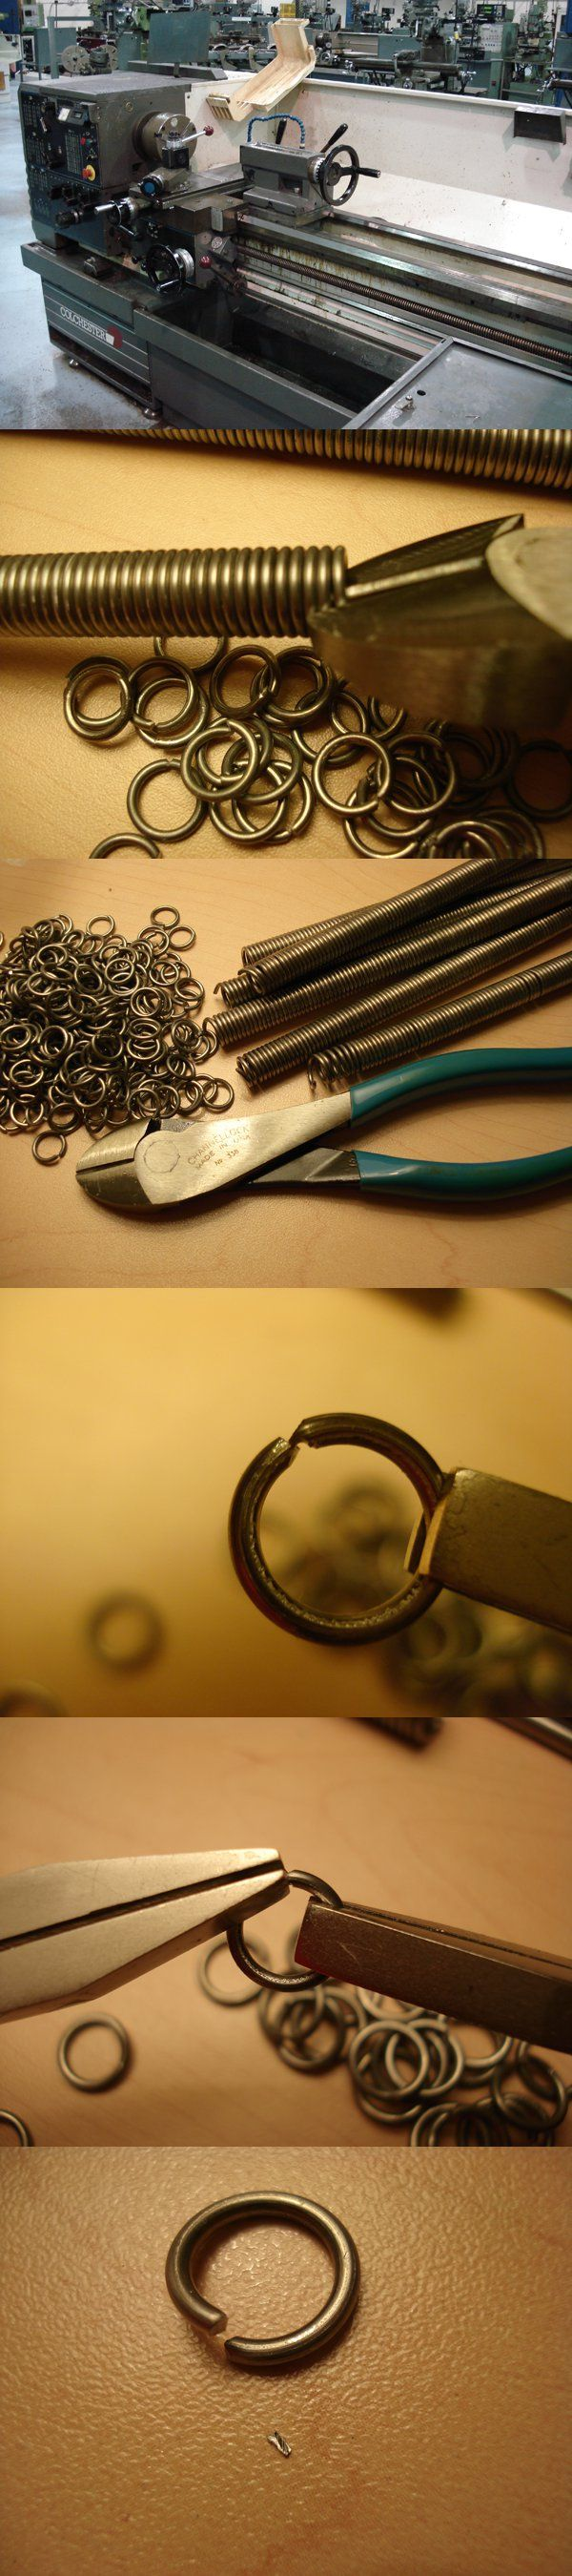 """How to Make Chainmail """"The Basics"""" - Continued Part Two: Preparing the Rings This step deals with creating the actual rings of the Chainmail. This step requires a little experimentation. As always,..."""